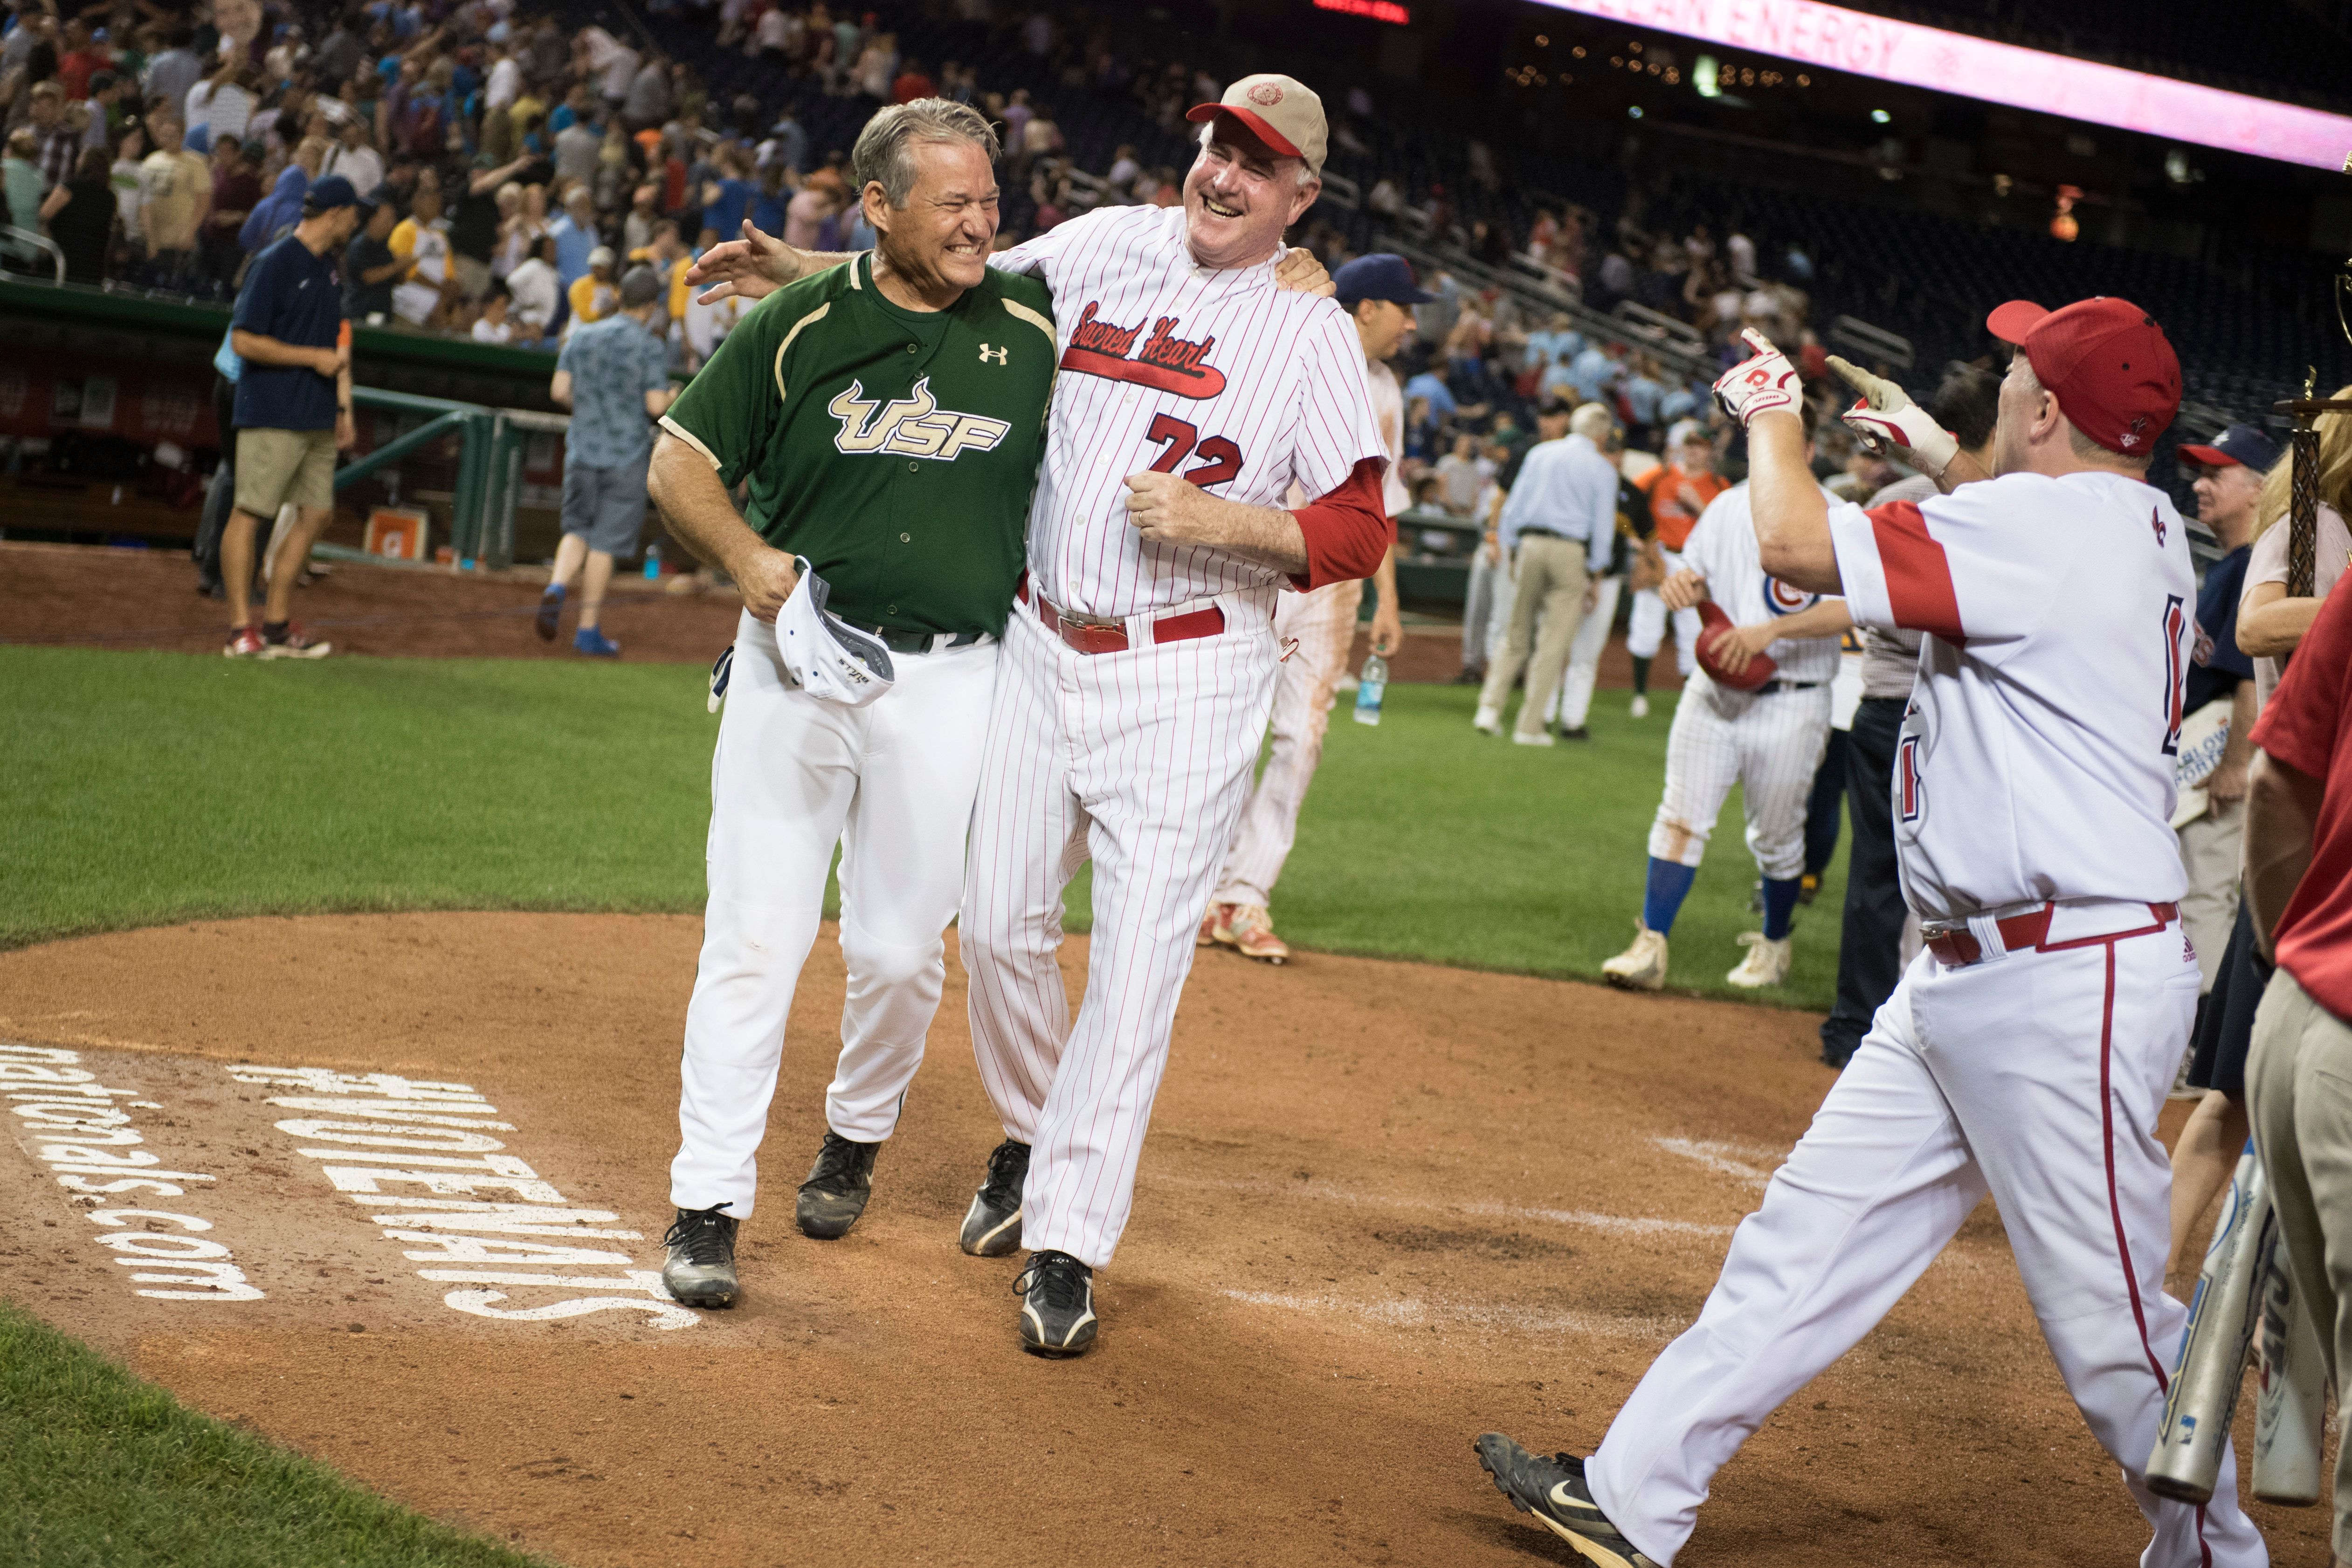 UNITED STATES - JUNE 23: From left, Reps. Dennis Ross, R-Fla., Patrick Meehan, R-Pa., and House Majority Whip Steve Scalise, R-La., celebrate after the Republicans' 8-7 victory in the 55th Congressional Baseball Game in Nationals Park, June 23, 2016. (Photo By Tom Williams/CQ Roll Call)